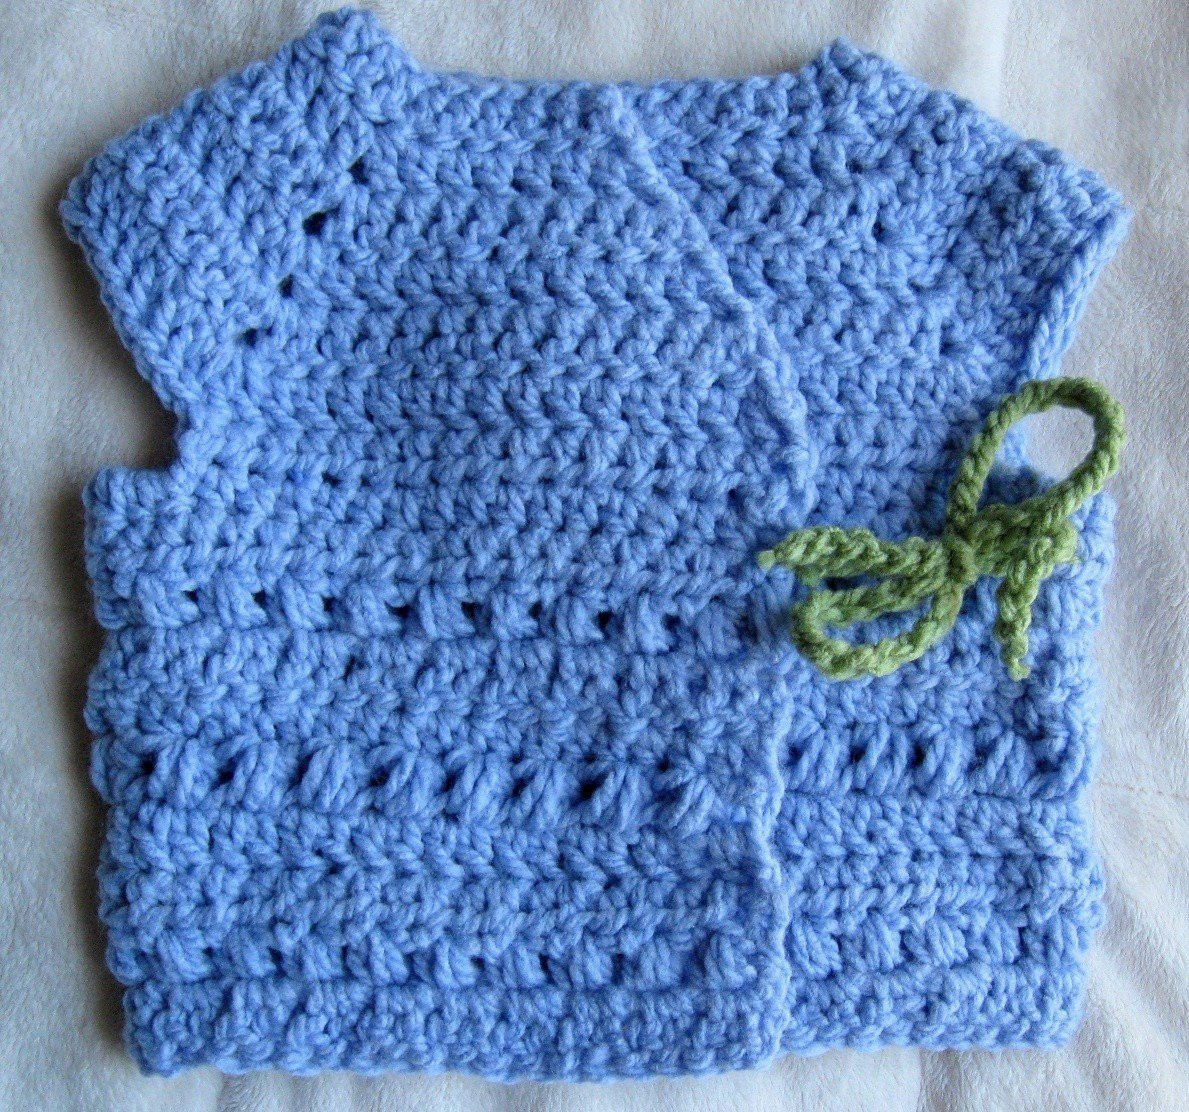 EASY CROCHETED SWEATER PATTERNS Crochet and Knitting